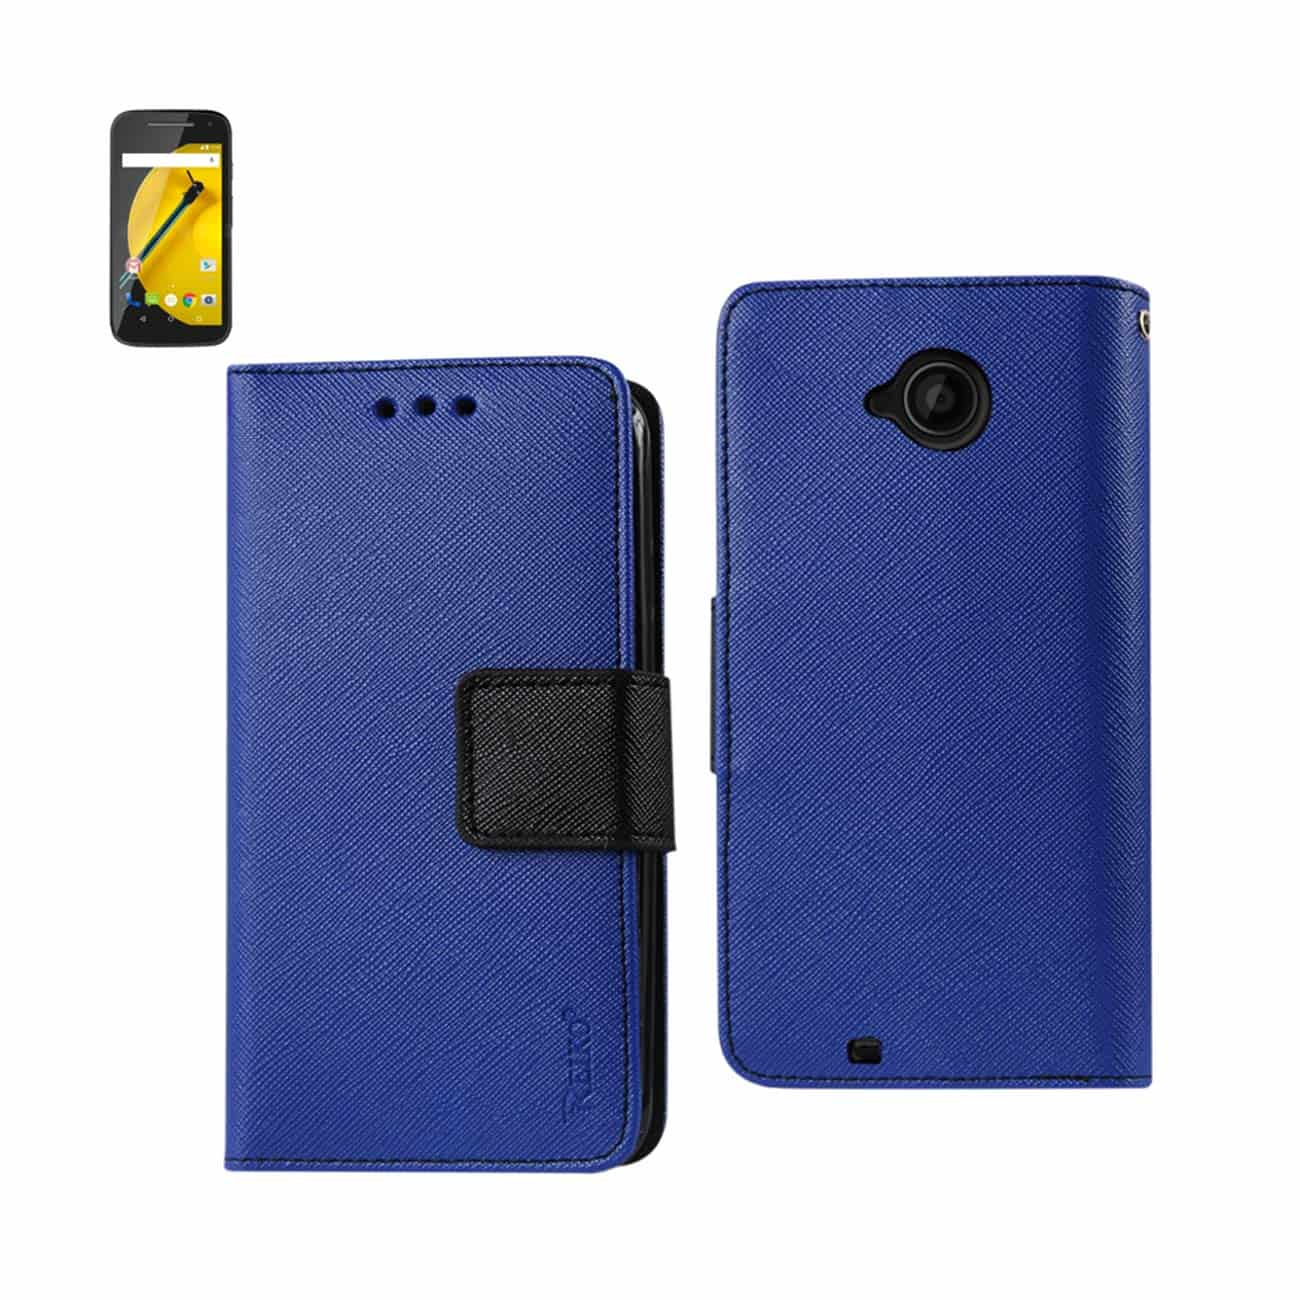 MOTOROLA MOTO E (2015) 3-IN-1 WALLET CASE IN NAVY